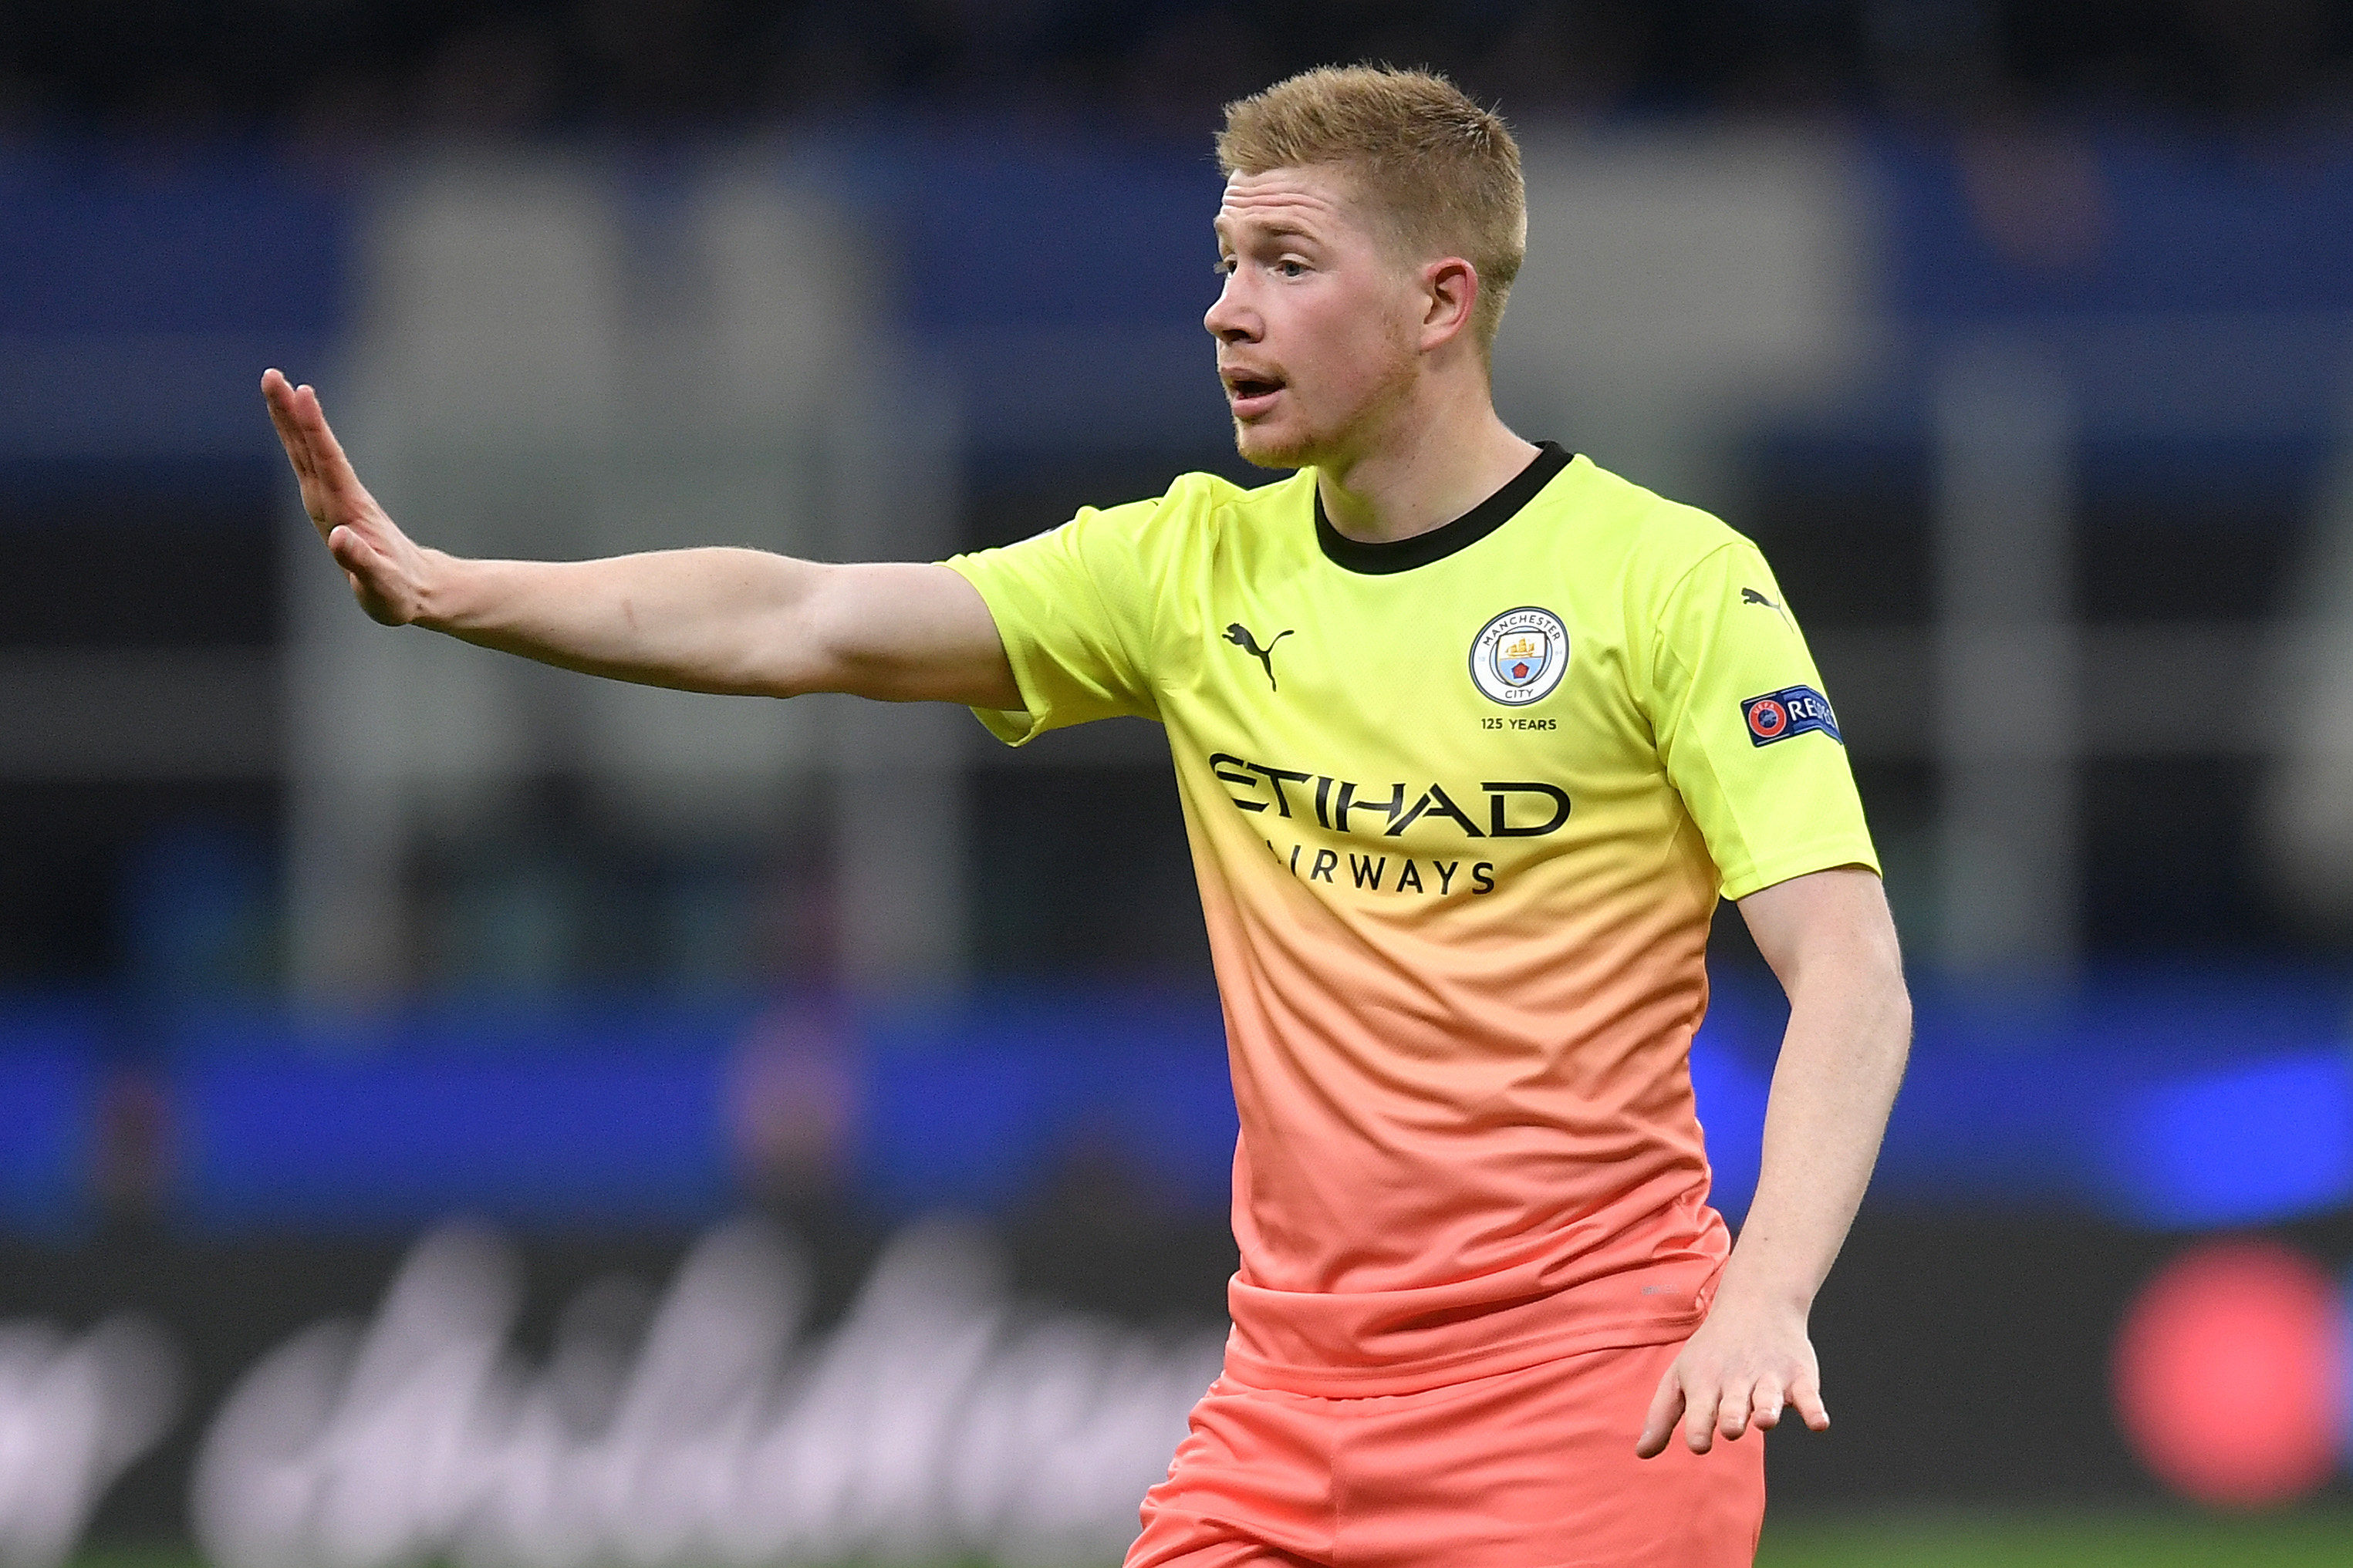 Kevin De Bruyne explains why he loves playing at Anfield